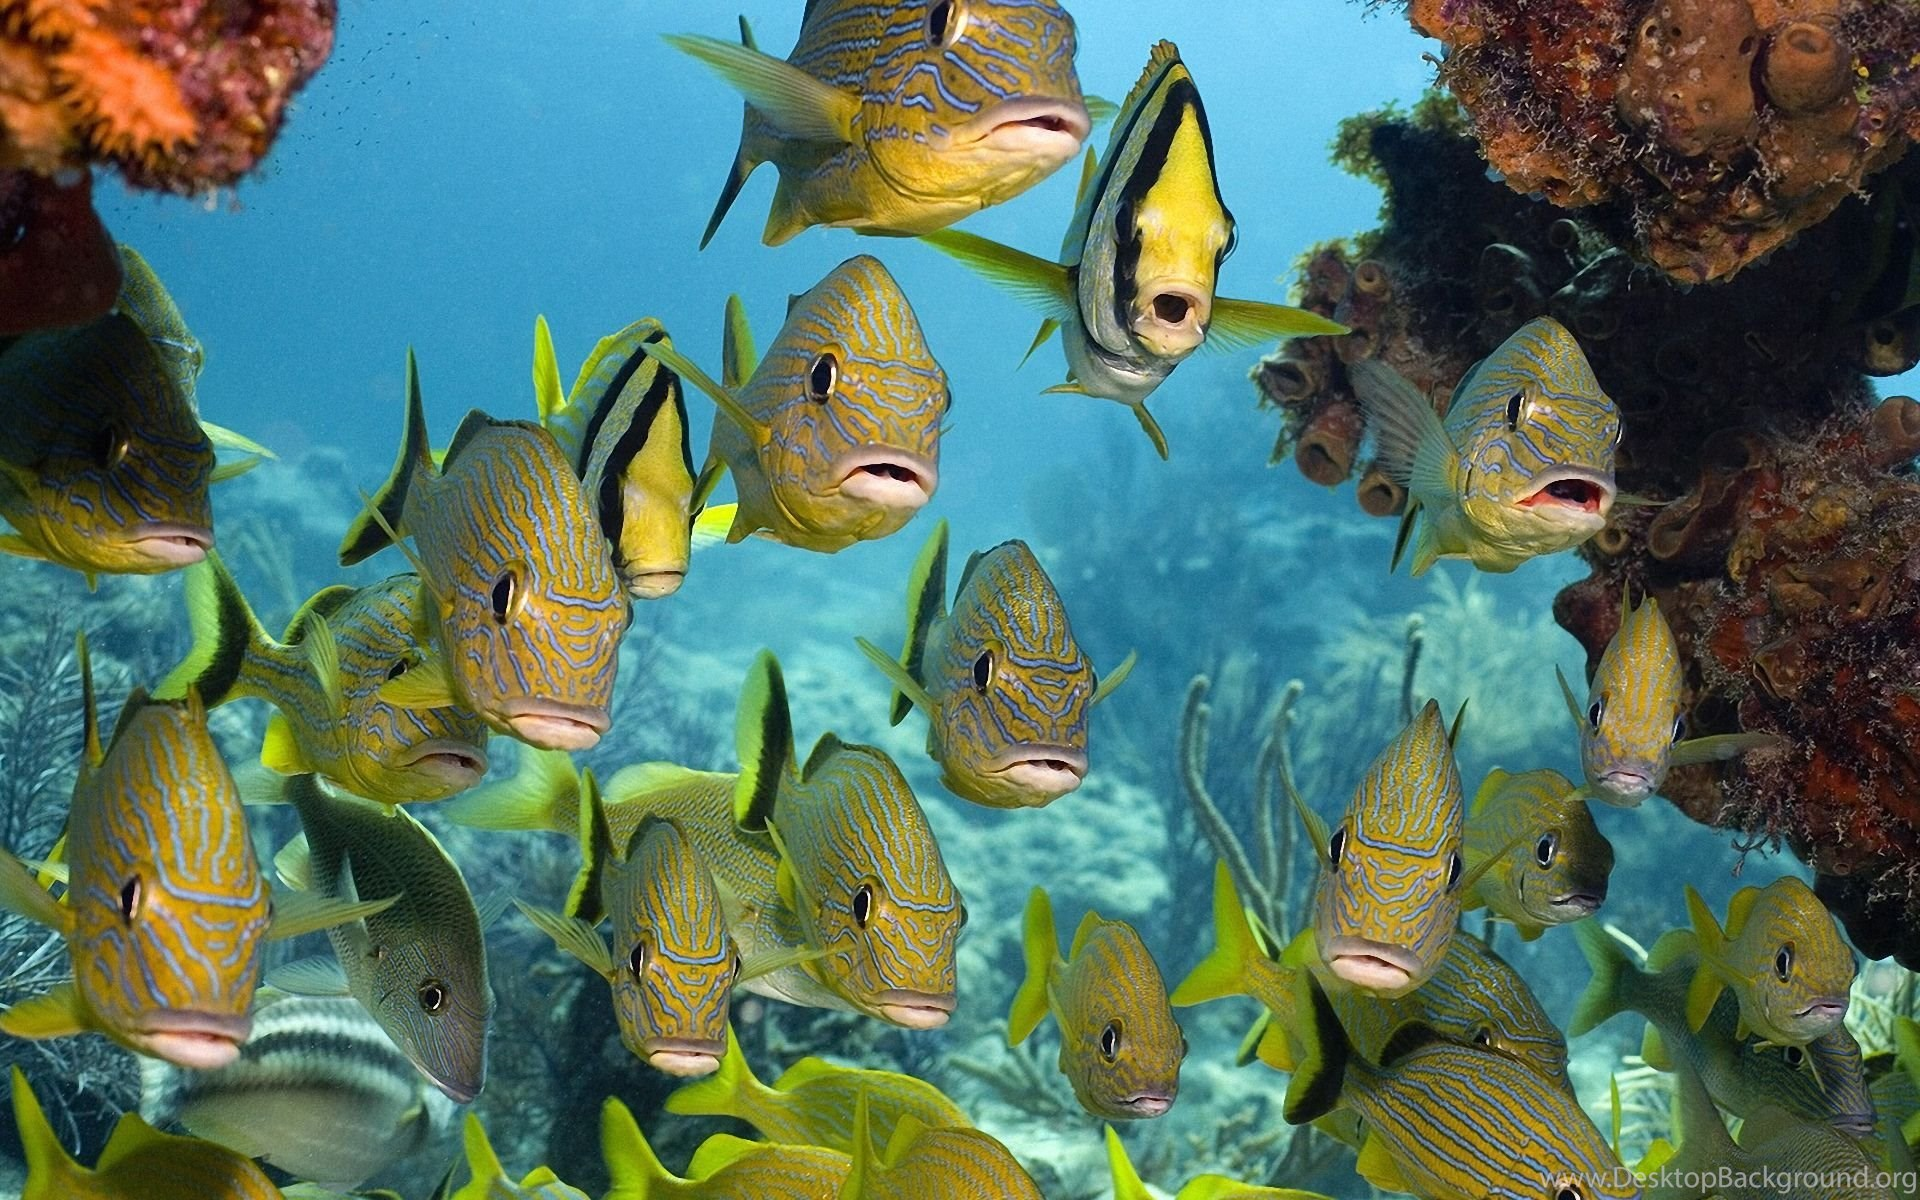 Tropical Fish Wallpapers 1920x1200 Wallpapers Sea Life 1920x1200